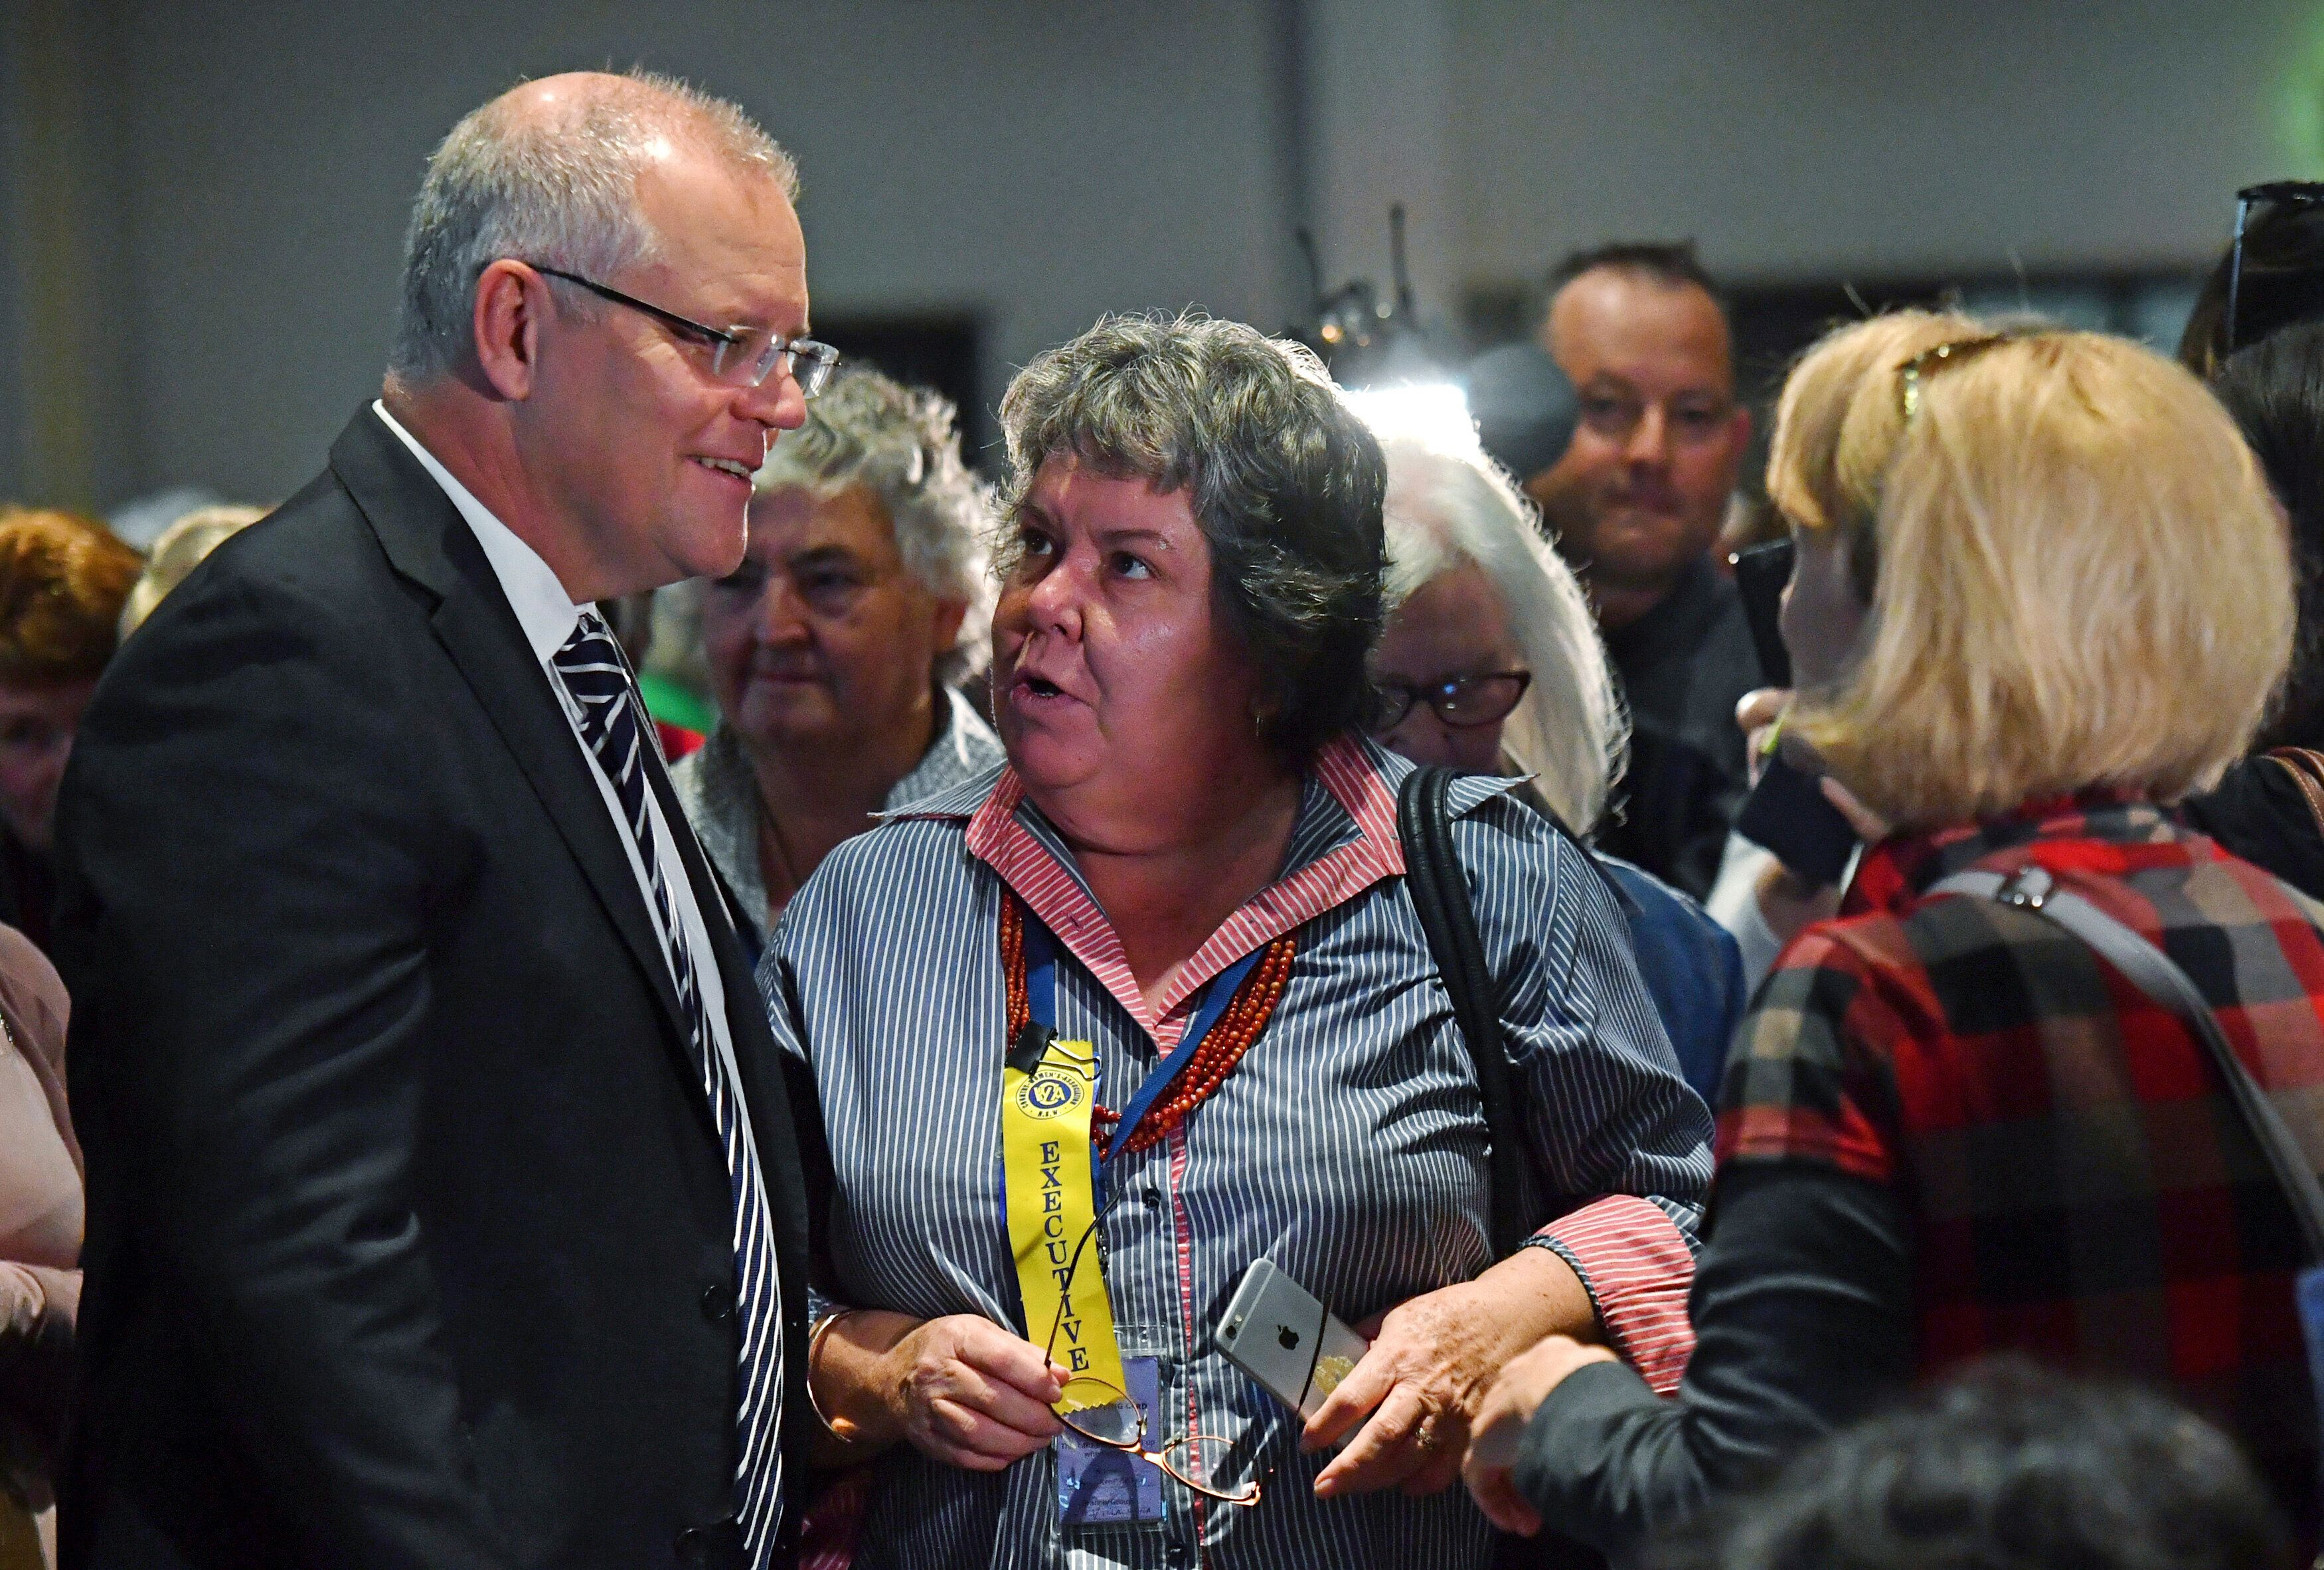 Australian Prime Minister Scott Morrison, left, talks with attendees at the Country Women's Association NSW annual conference in Albury, Tuesday, May 7, 2019. Morrison was was hit on the head with an egg and a woman was knocked off her feet during a protest at the event. (Mick Tsikas/AAP Image via AP)